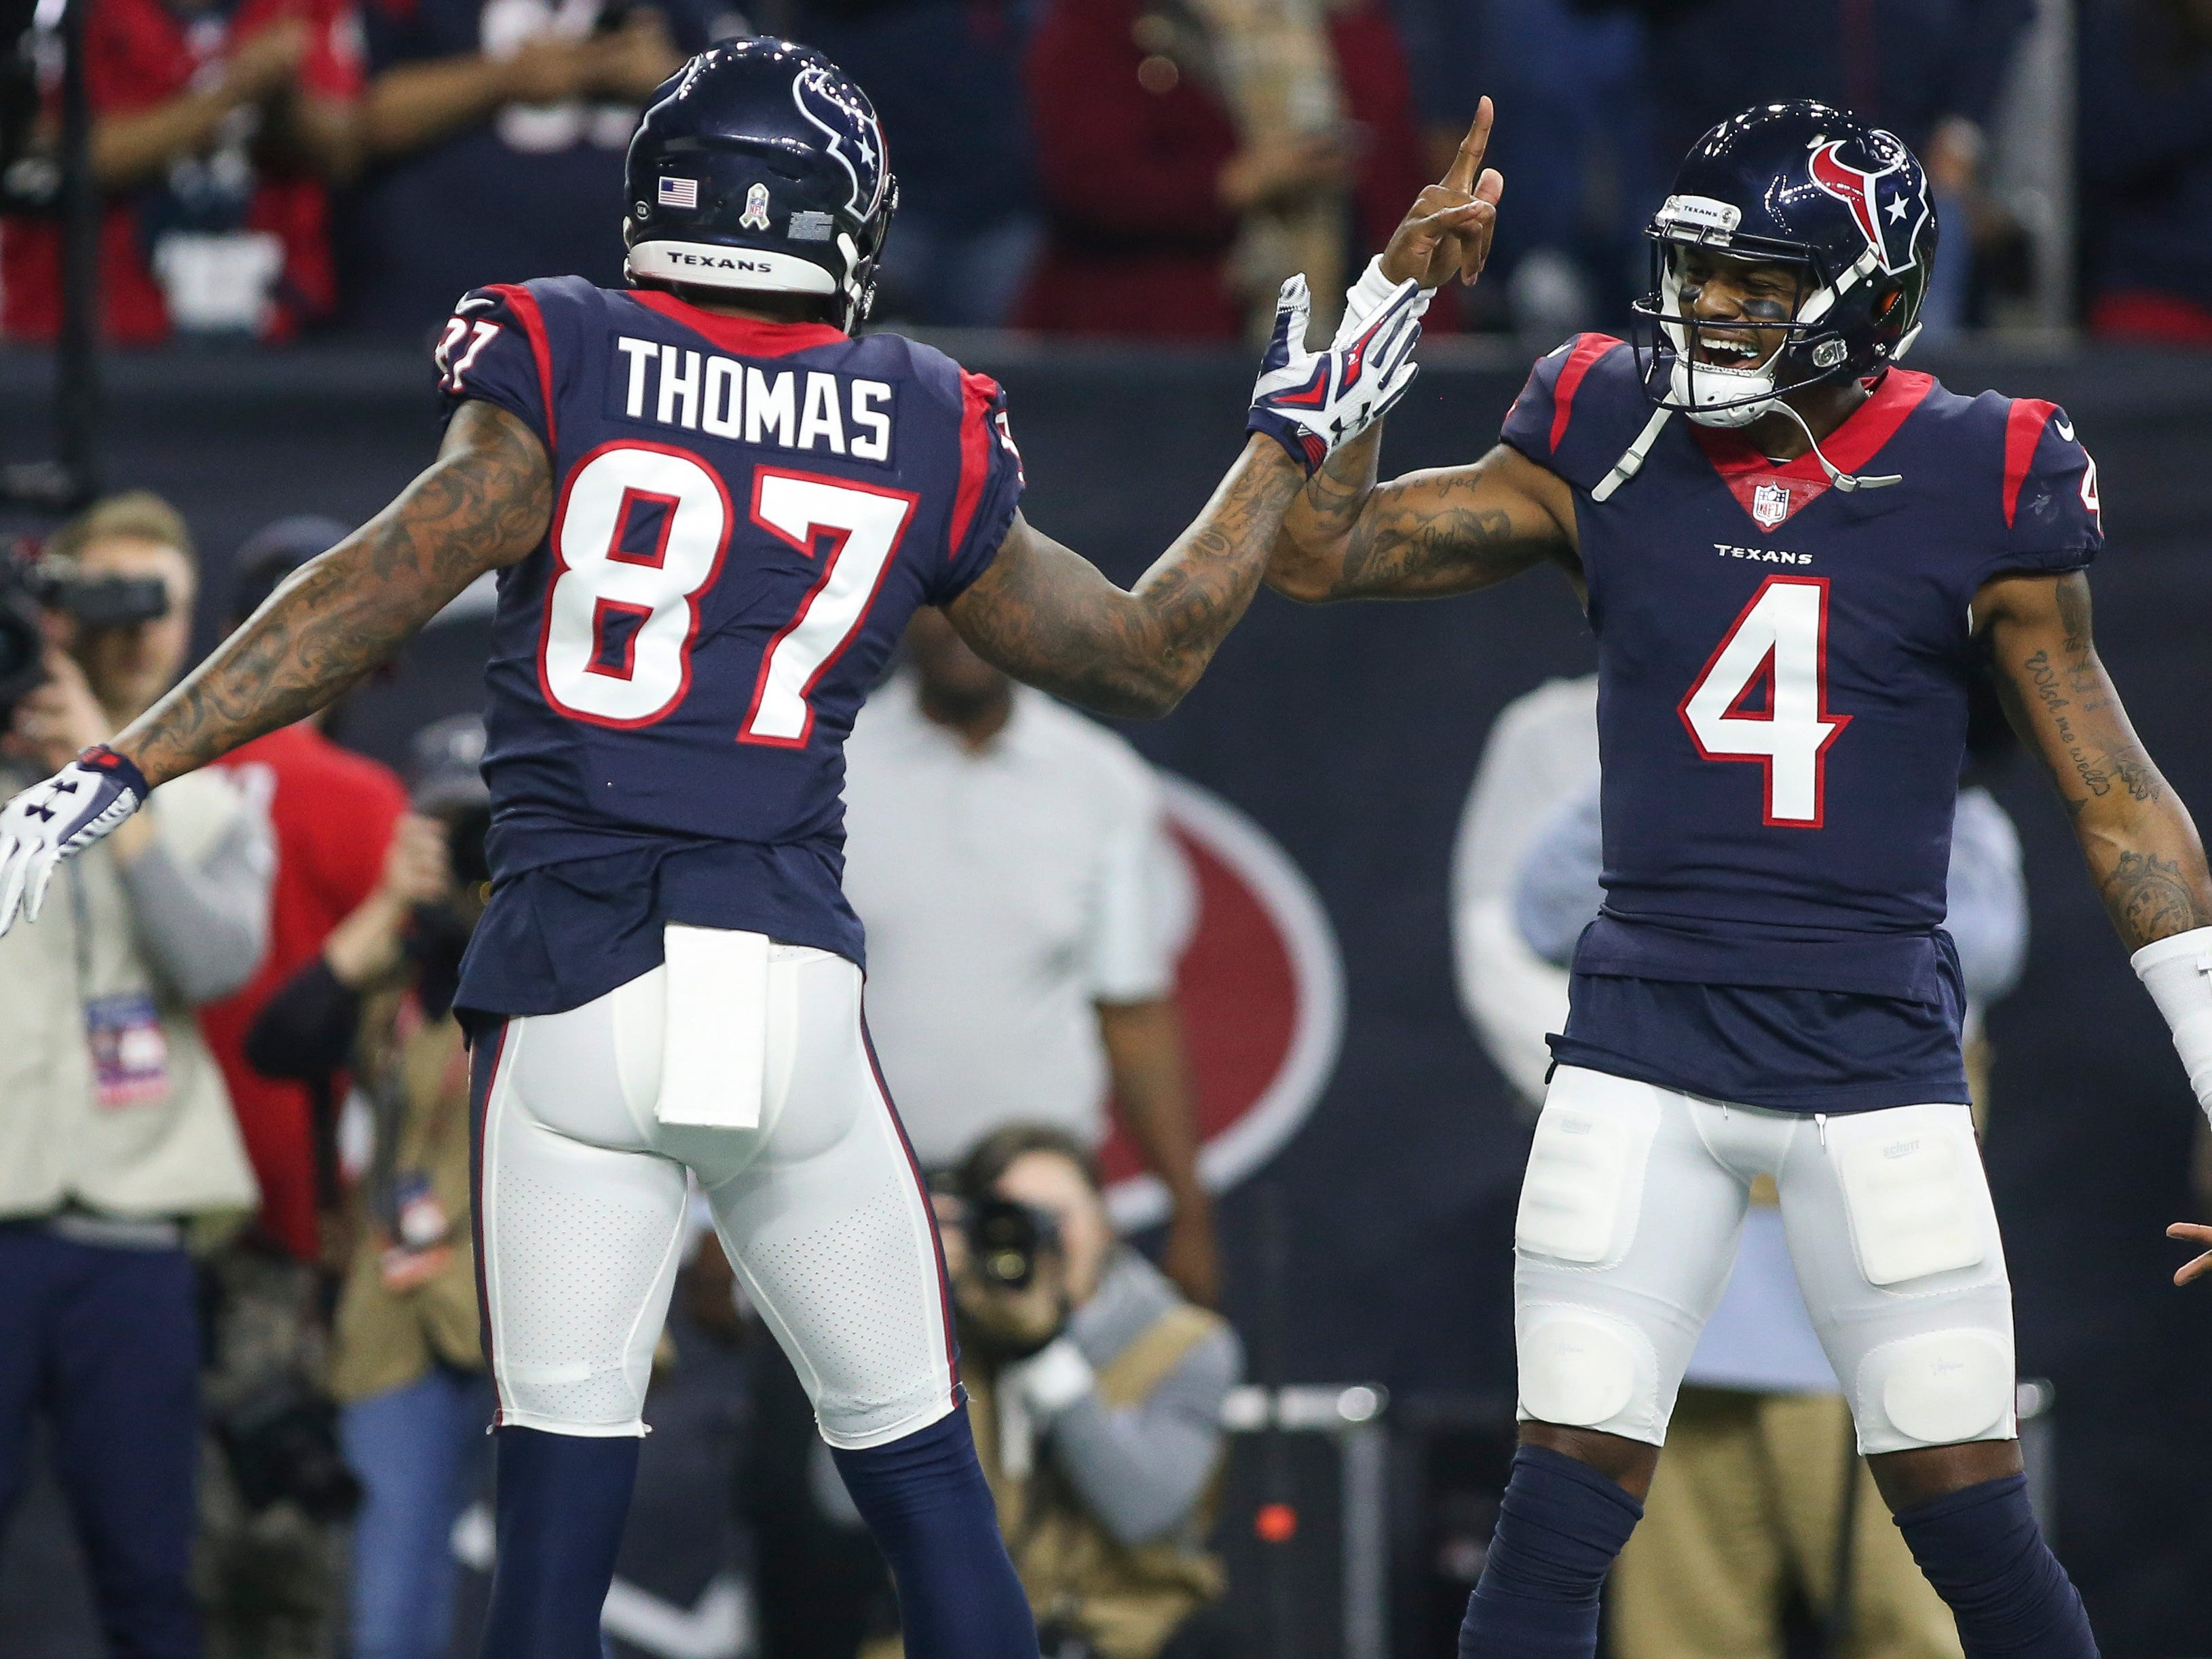 7. Texans (8): Franchise record eighth consecutive victory comes on night they rush for franchise record 281 yards. First team ever to win eight straight following 0-3 start to season. Throw out those record books when Houston takes field.